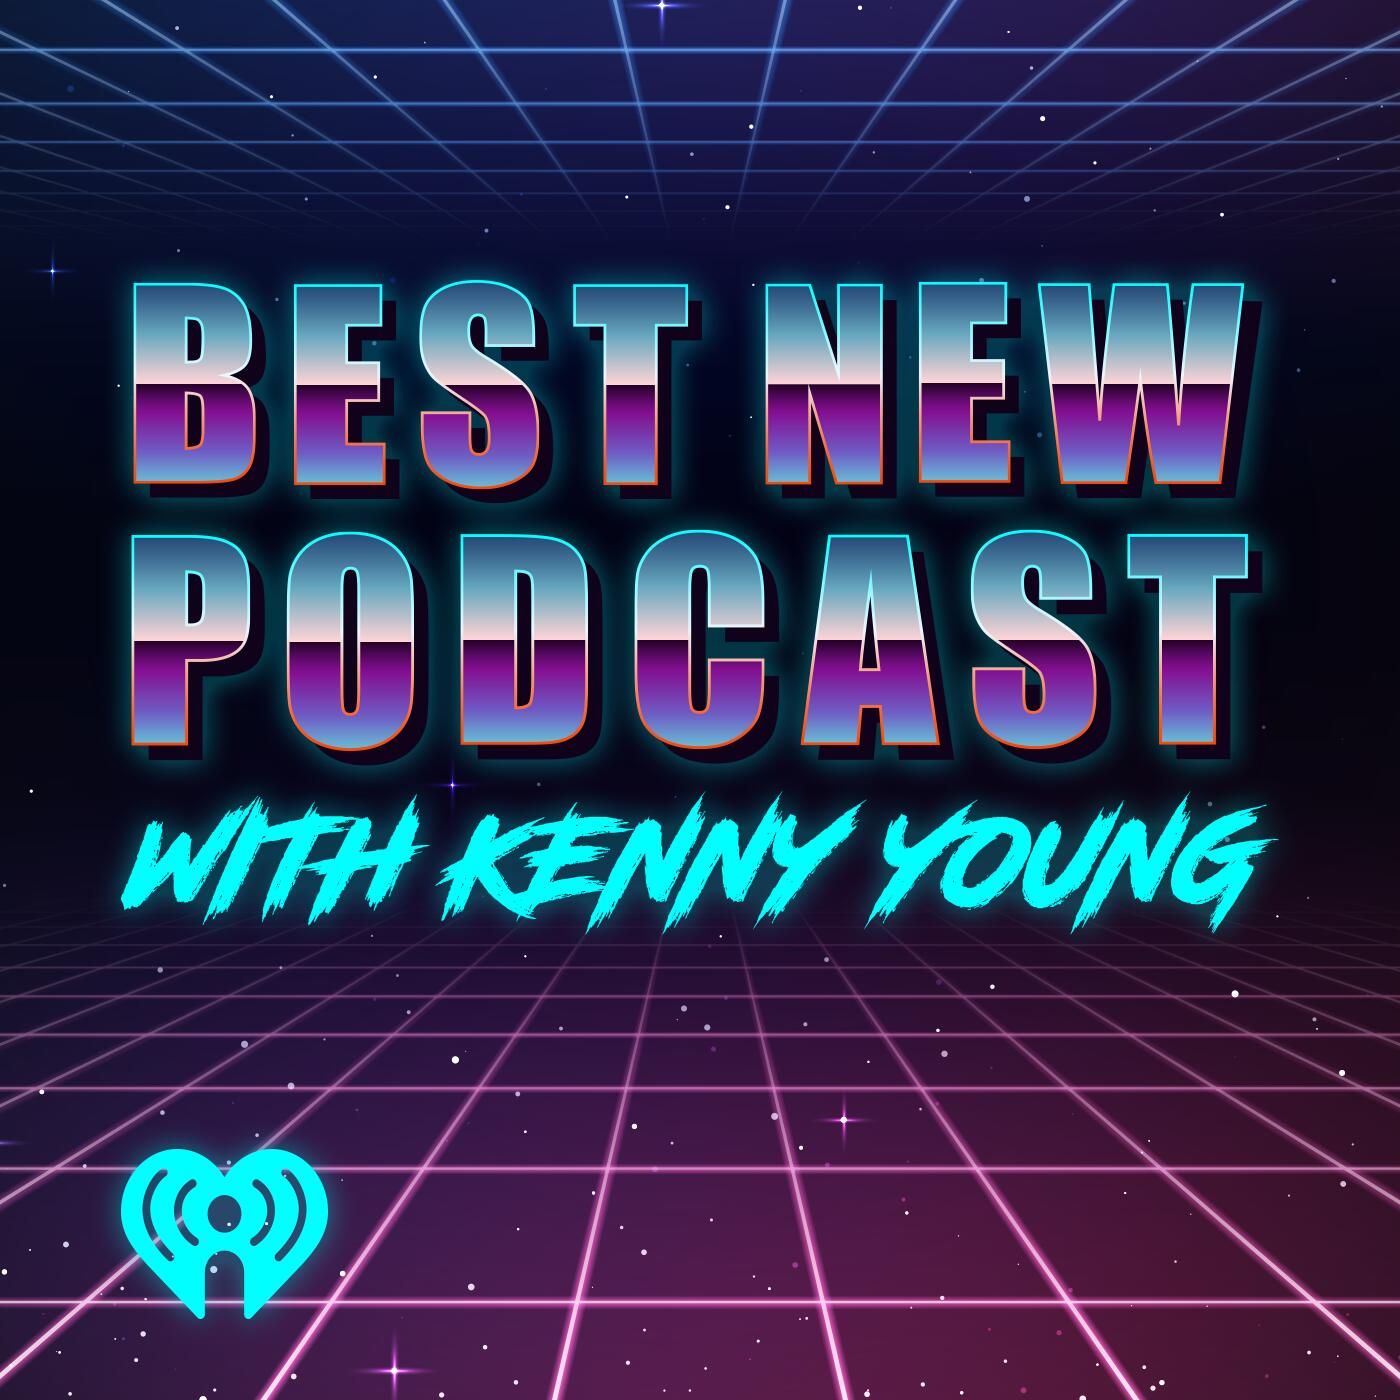 The Best New Podcast With Kenny Young